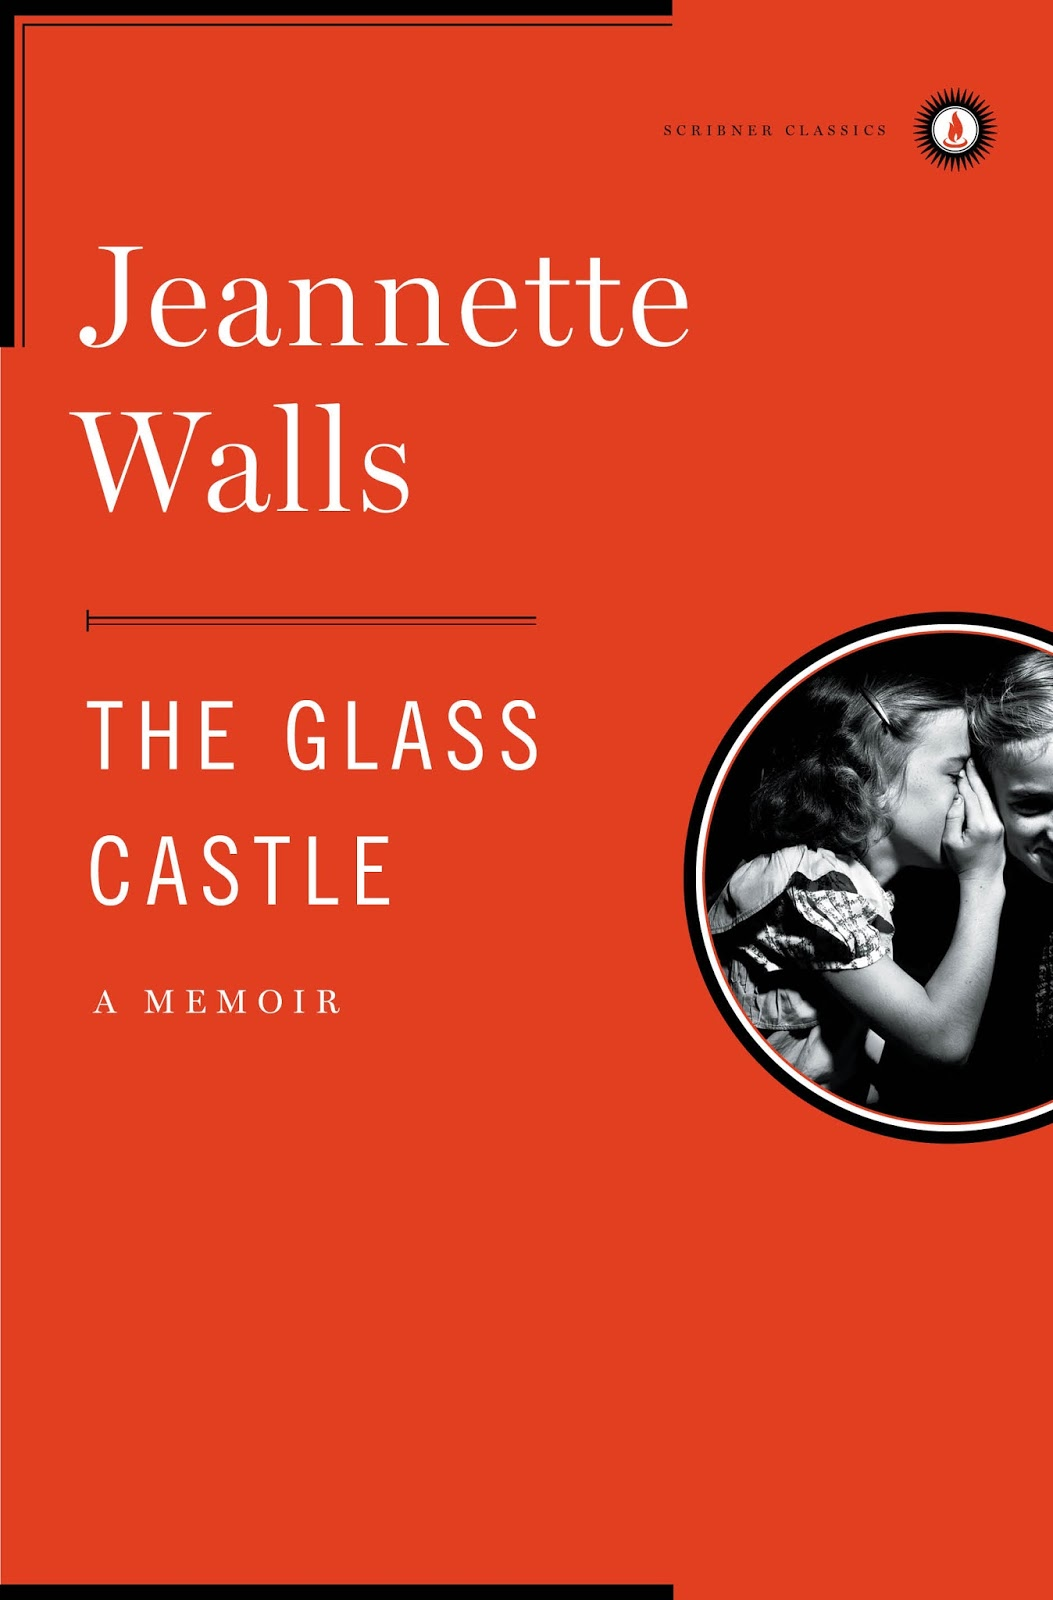 the glass castle an essay avinashaunaruth one never knows what is in the waiting on the journey of life there is no guarantee if happiness and good luck will prevail or if despair and misfortune